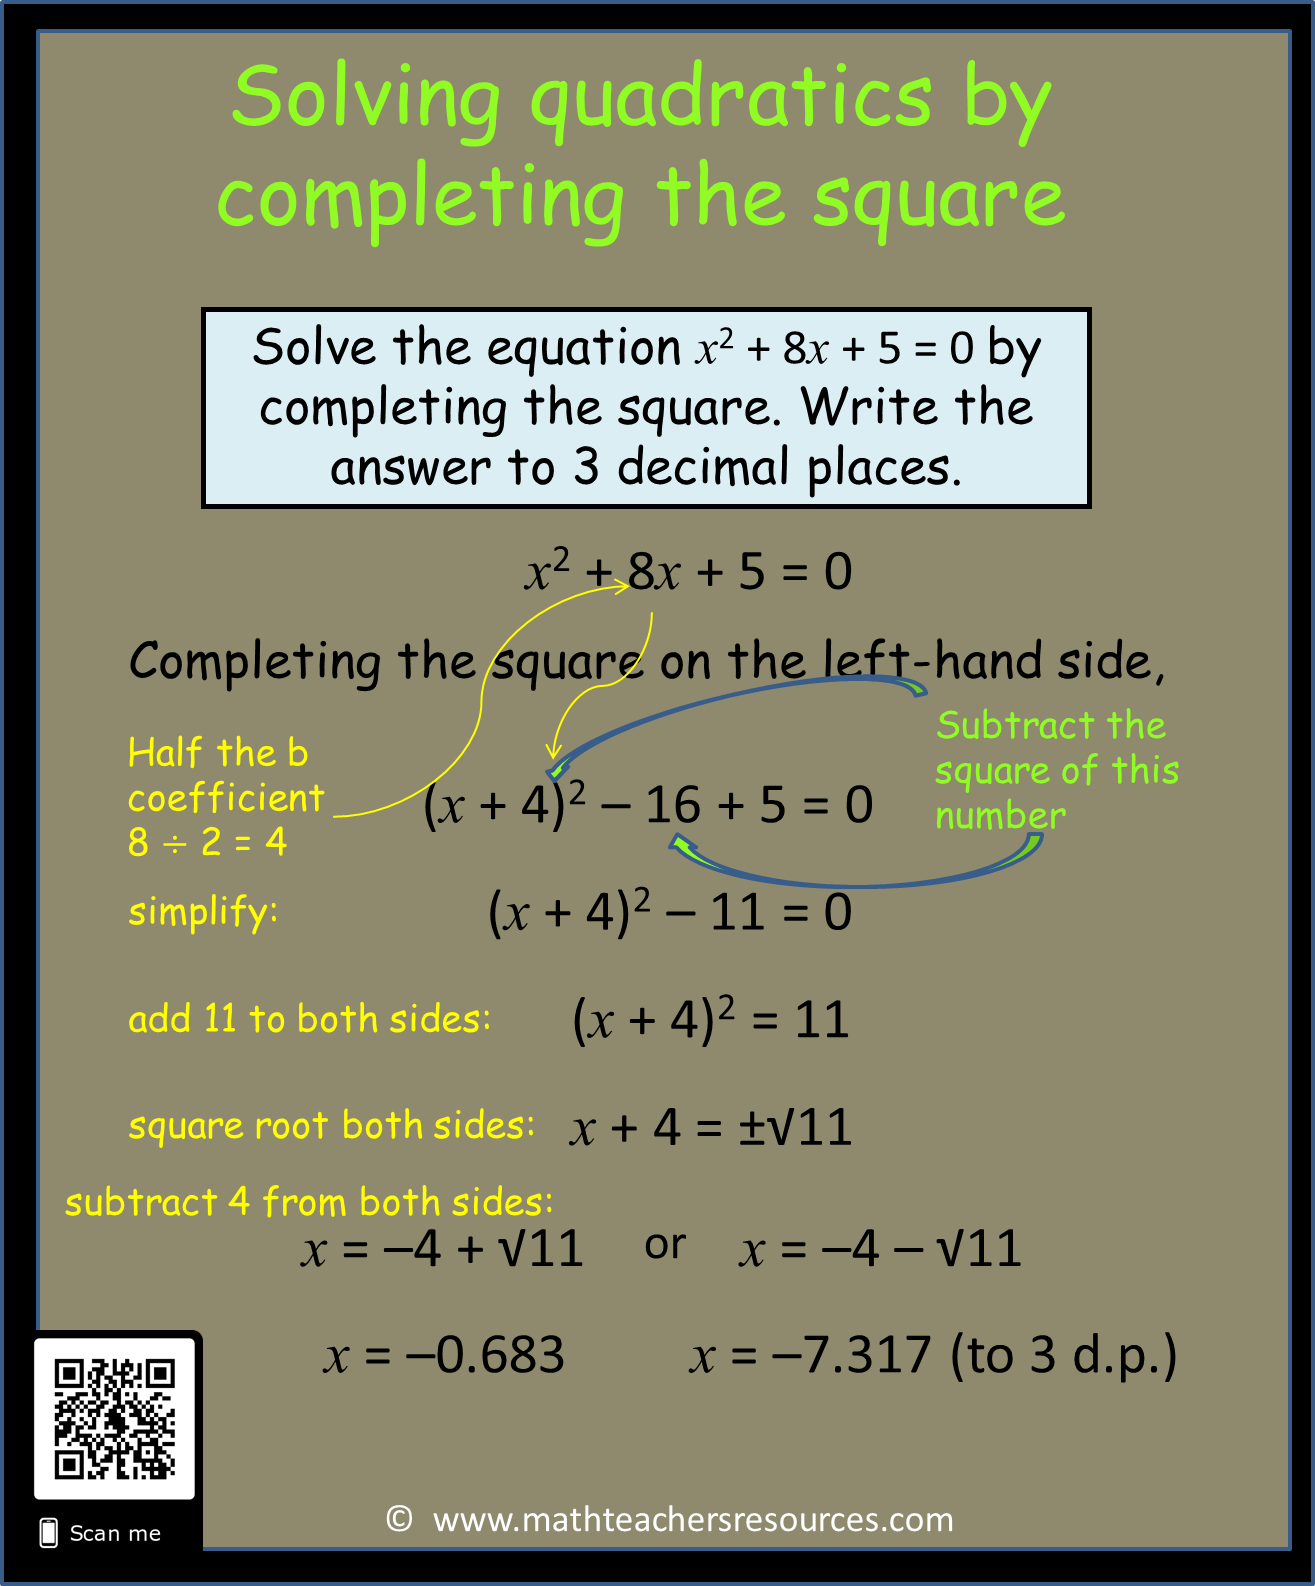 small resolution of How to solve quadratic equations by completing the square   Math  Infographic   Solving quadratic equations